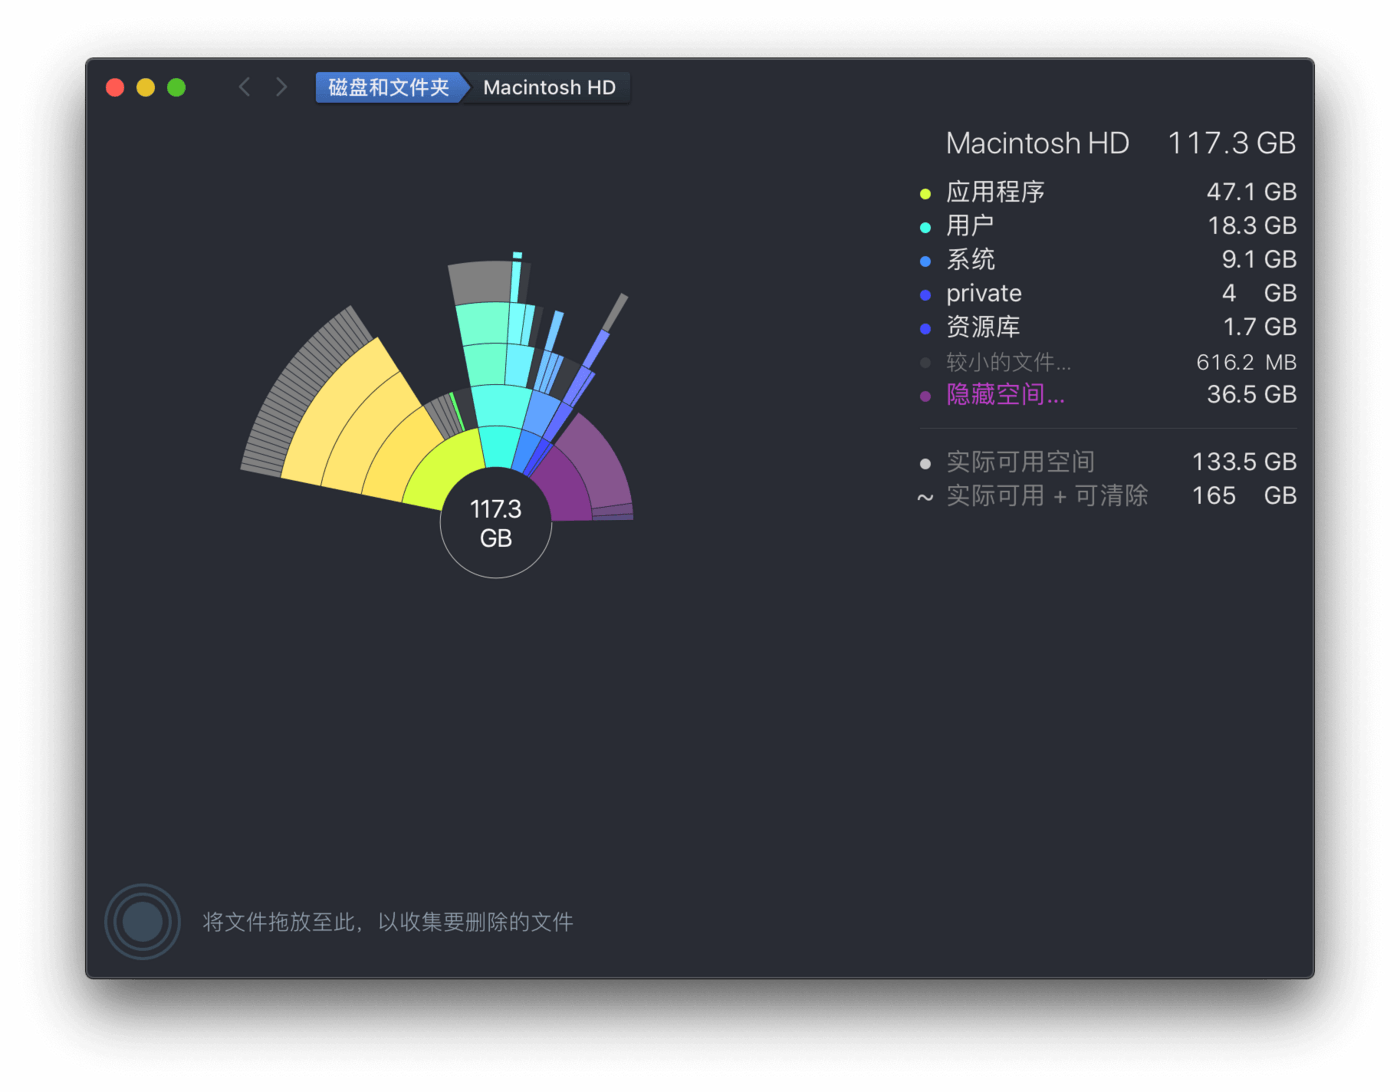 DaisyDisk 显示磁盘占用情况